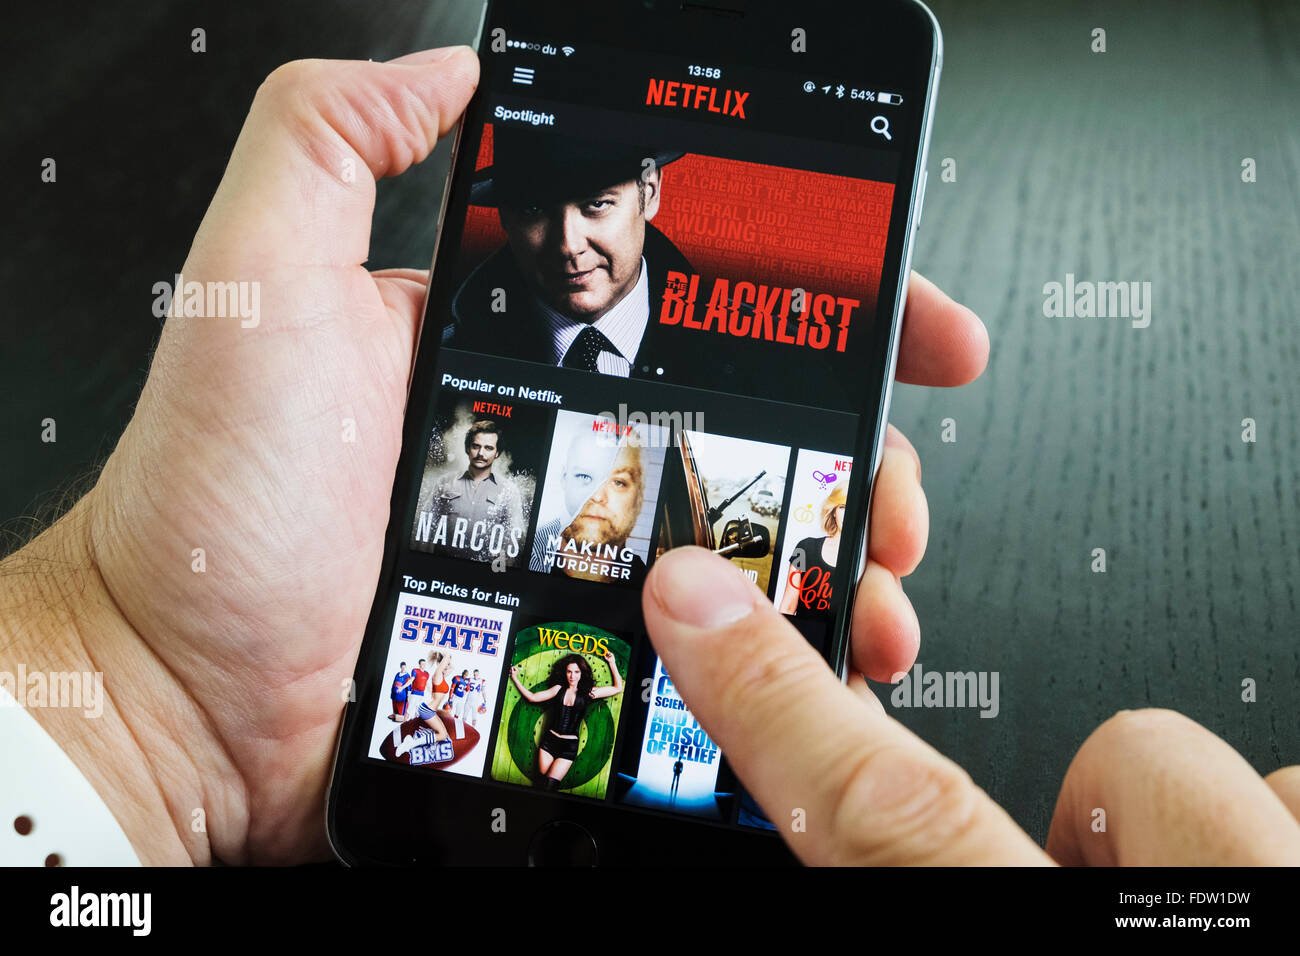 Homepage of Netflix on-demand Movie and TV streaming service app on iPhone 6 plus smart phone - Stock Image